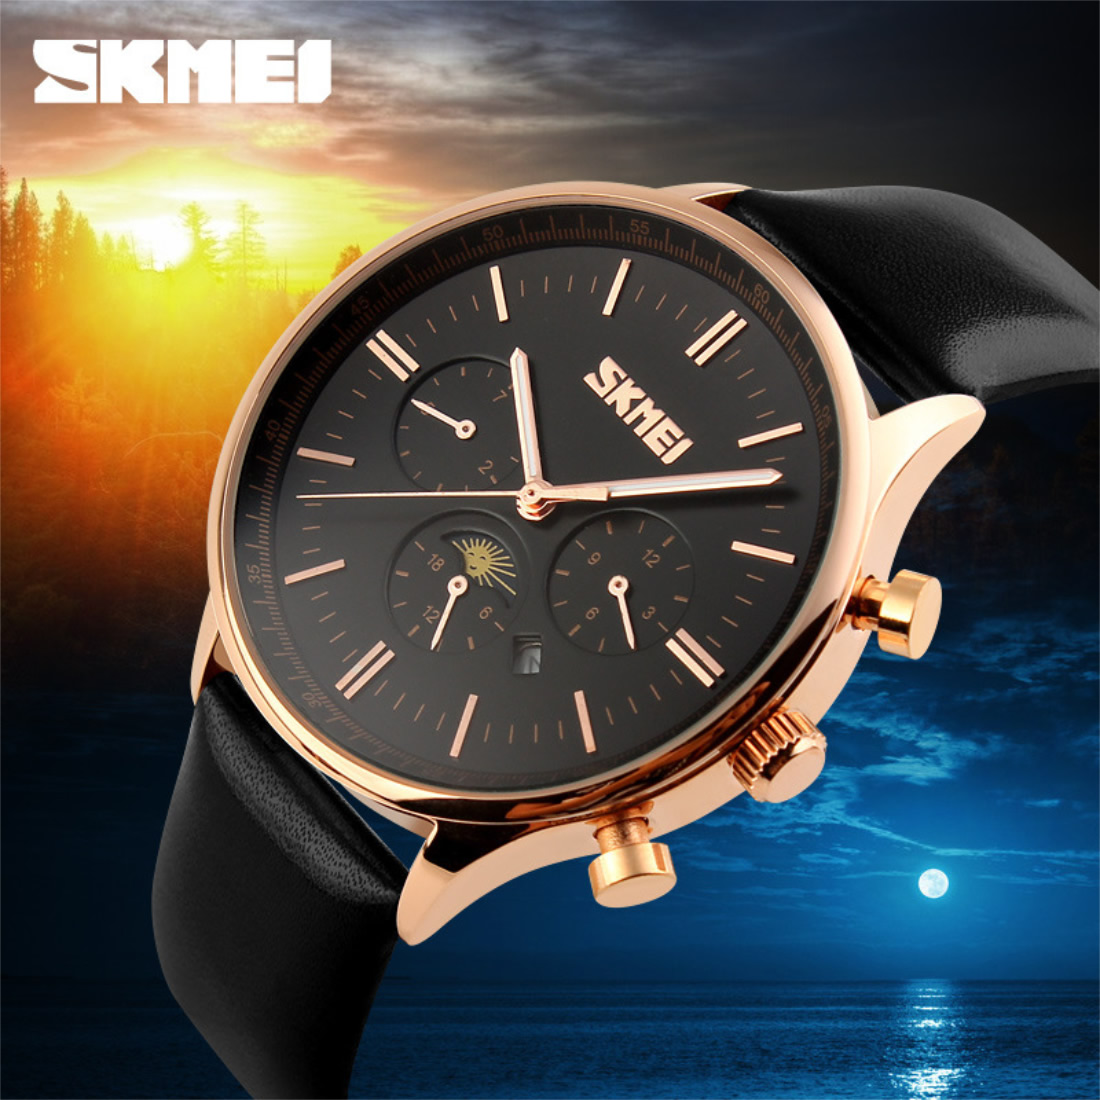 Watches Men Relojes Mujer 2018 Top Brand Luxury Business Wrist Watch Women Leather Quartz Sport Watch Mens Hours Clock Relogio luxury men s women quartz watch business watch men women watch